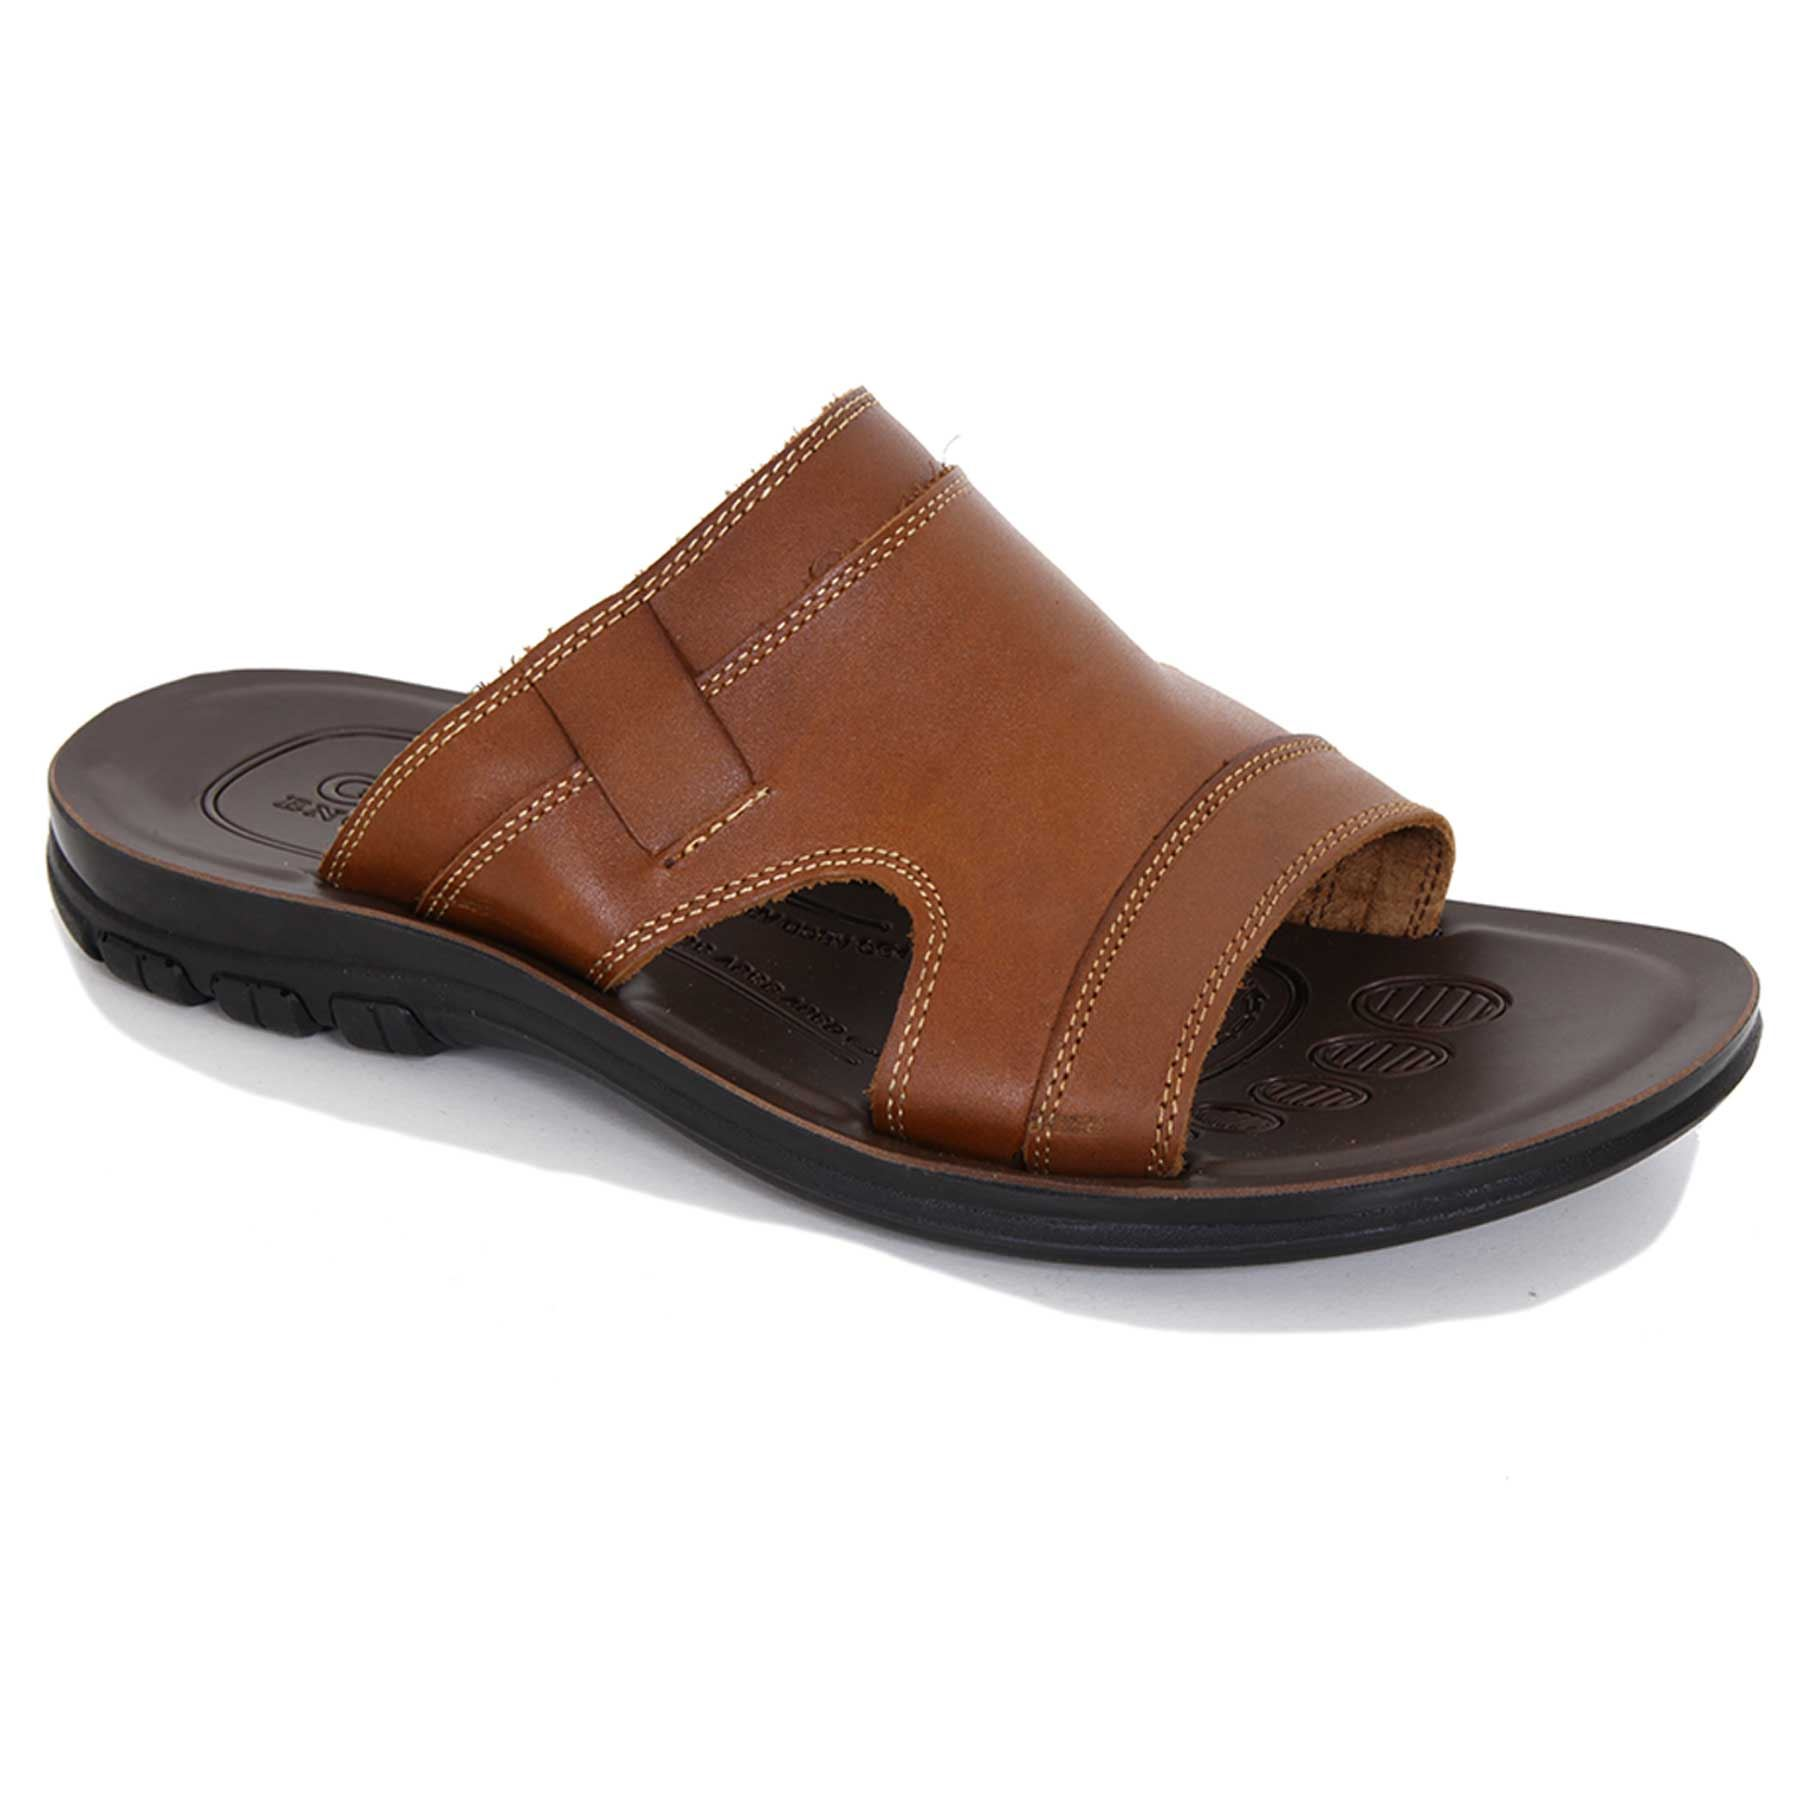 Menu0026#39;s Slip On Open Toe Casual Leather Outdoor Travel Beach ...